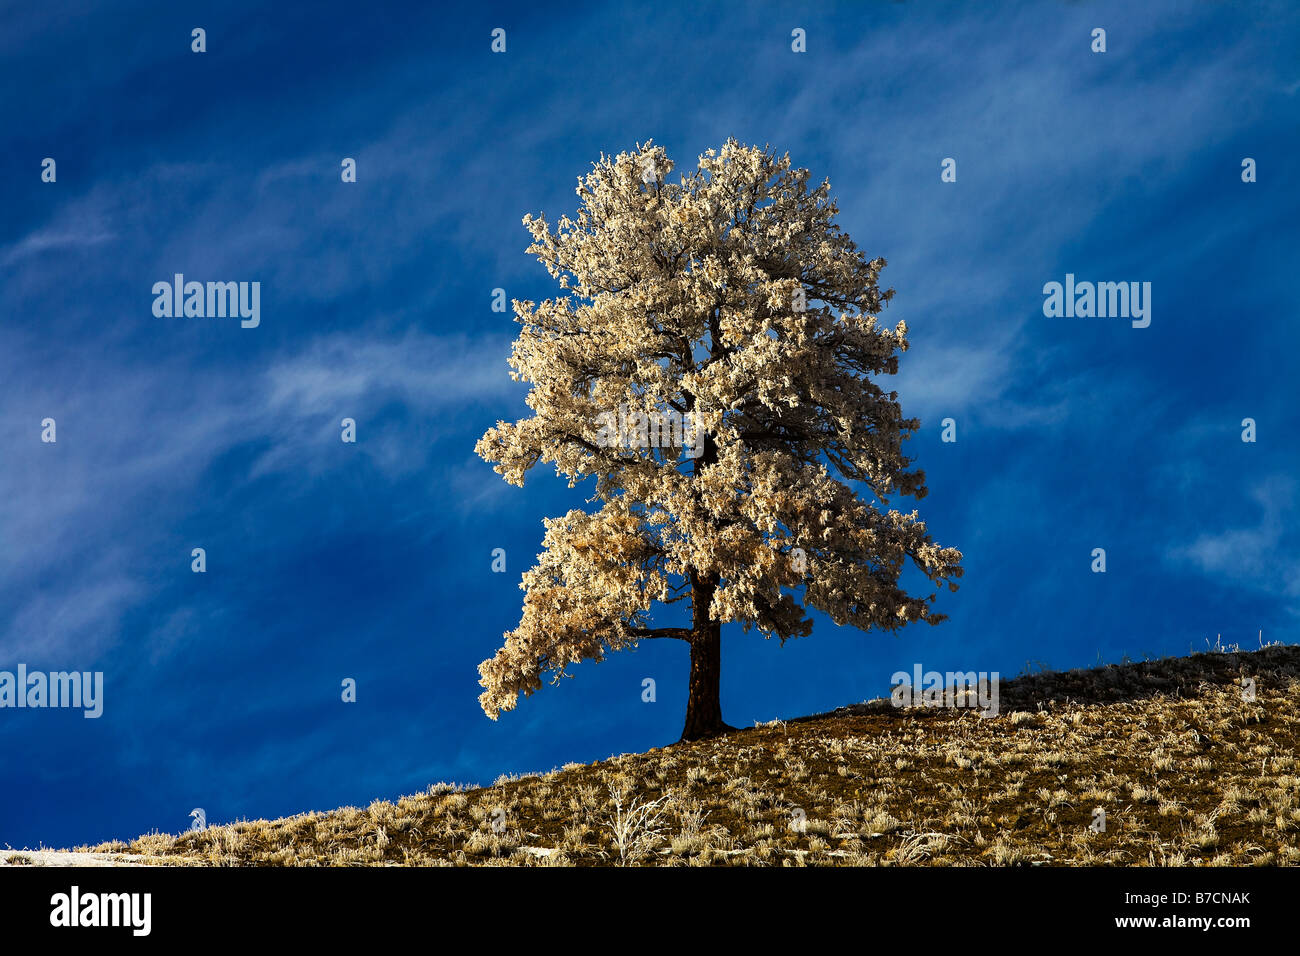 A lonely snow covered tree on the landscape - Stock Image